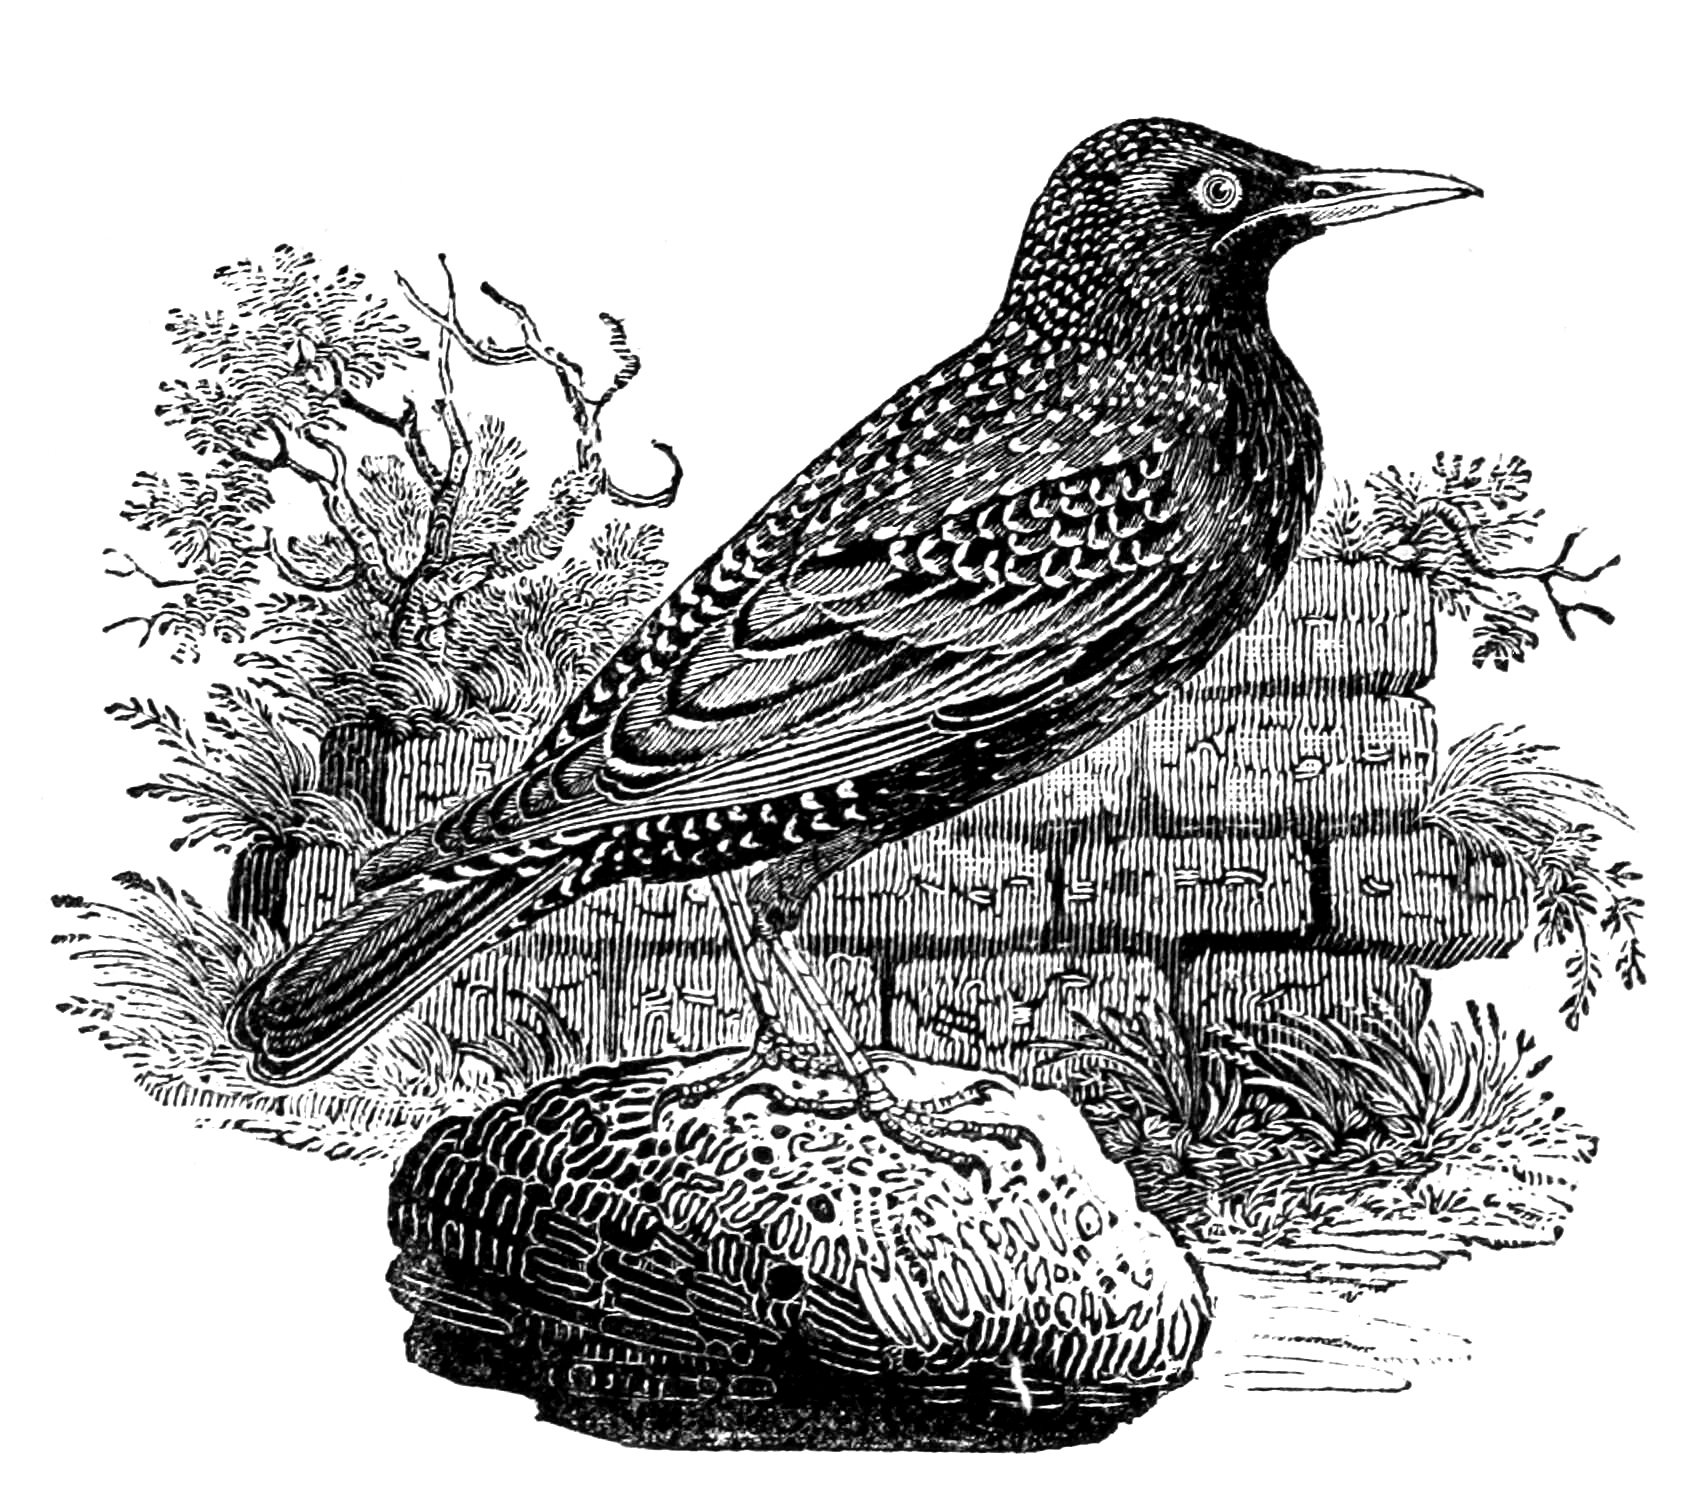 Blackbird illustration